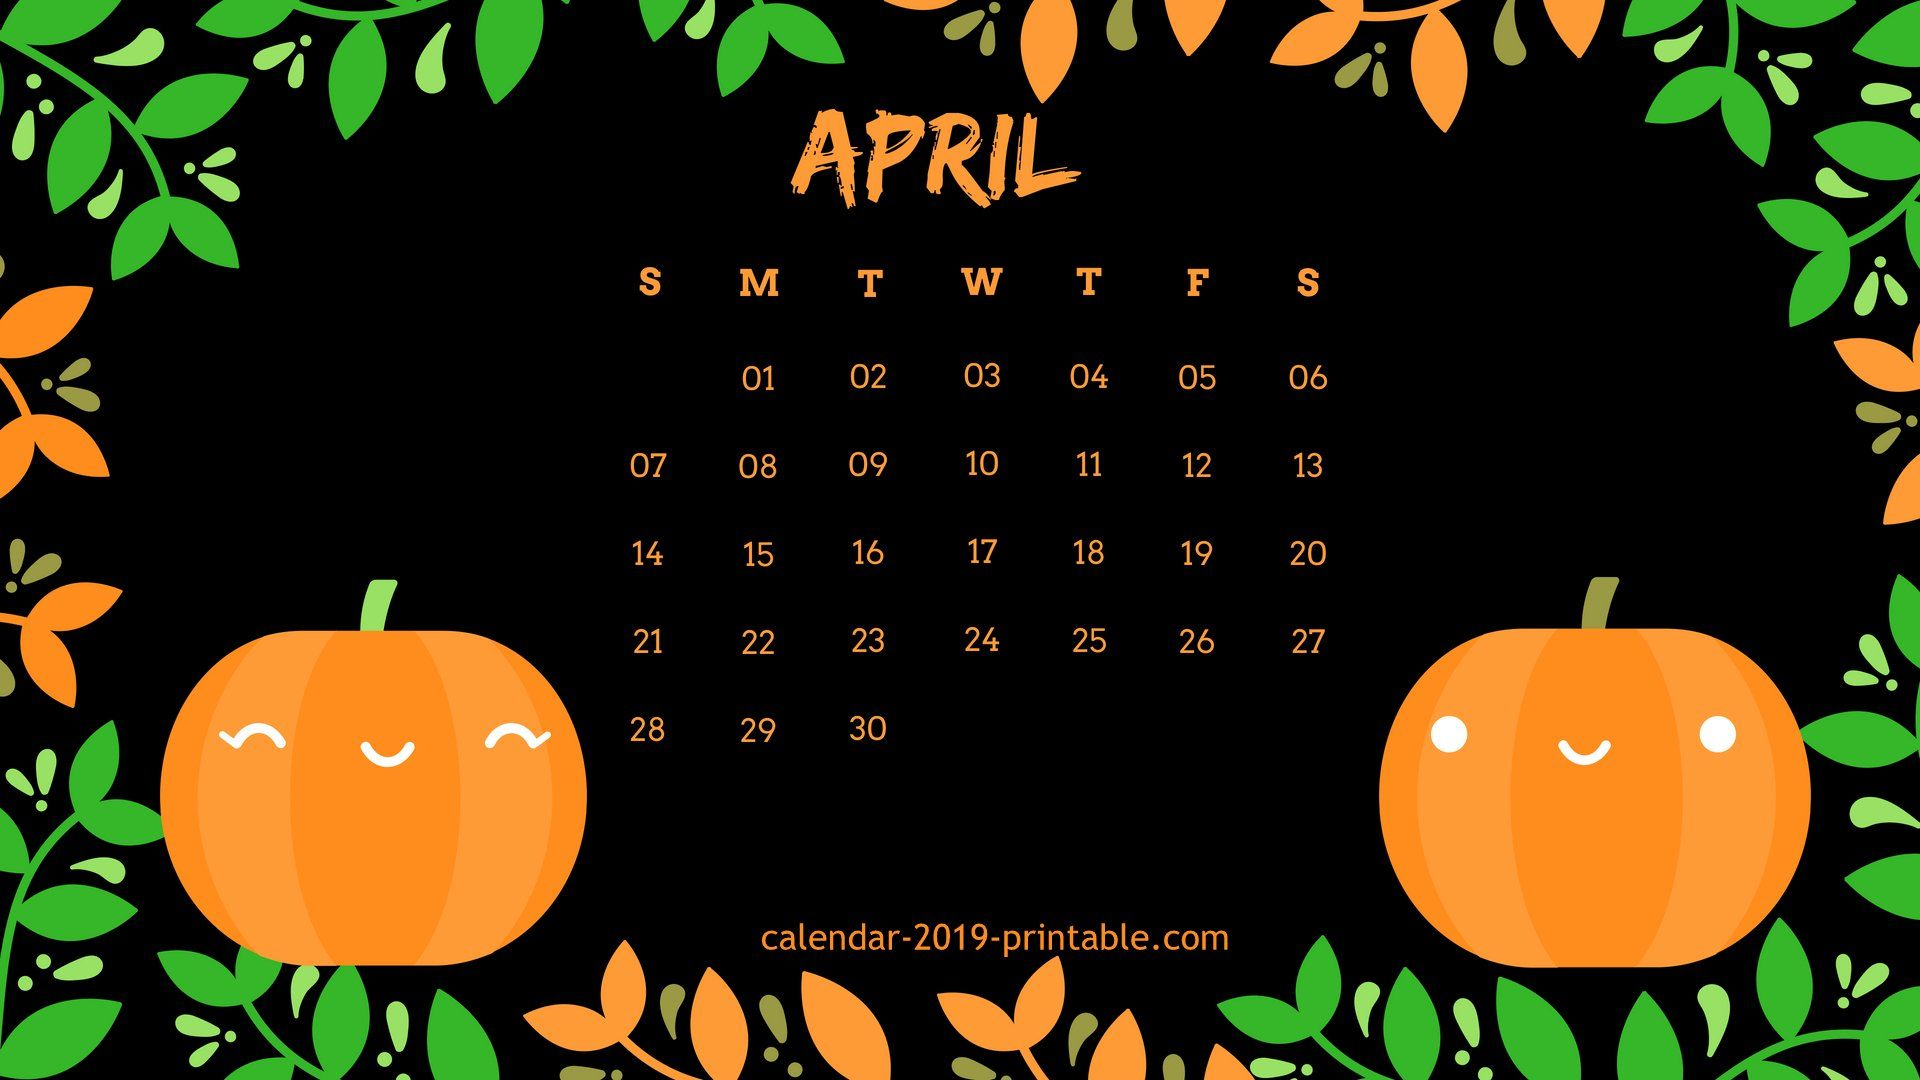 Desktop Calendar Wallpaper April 2019